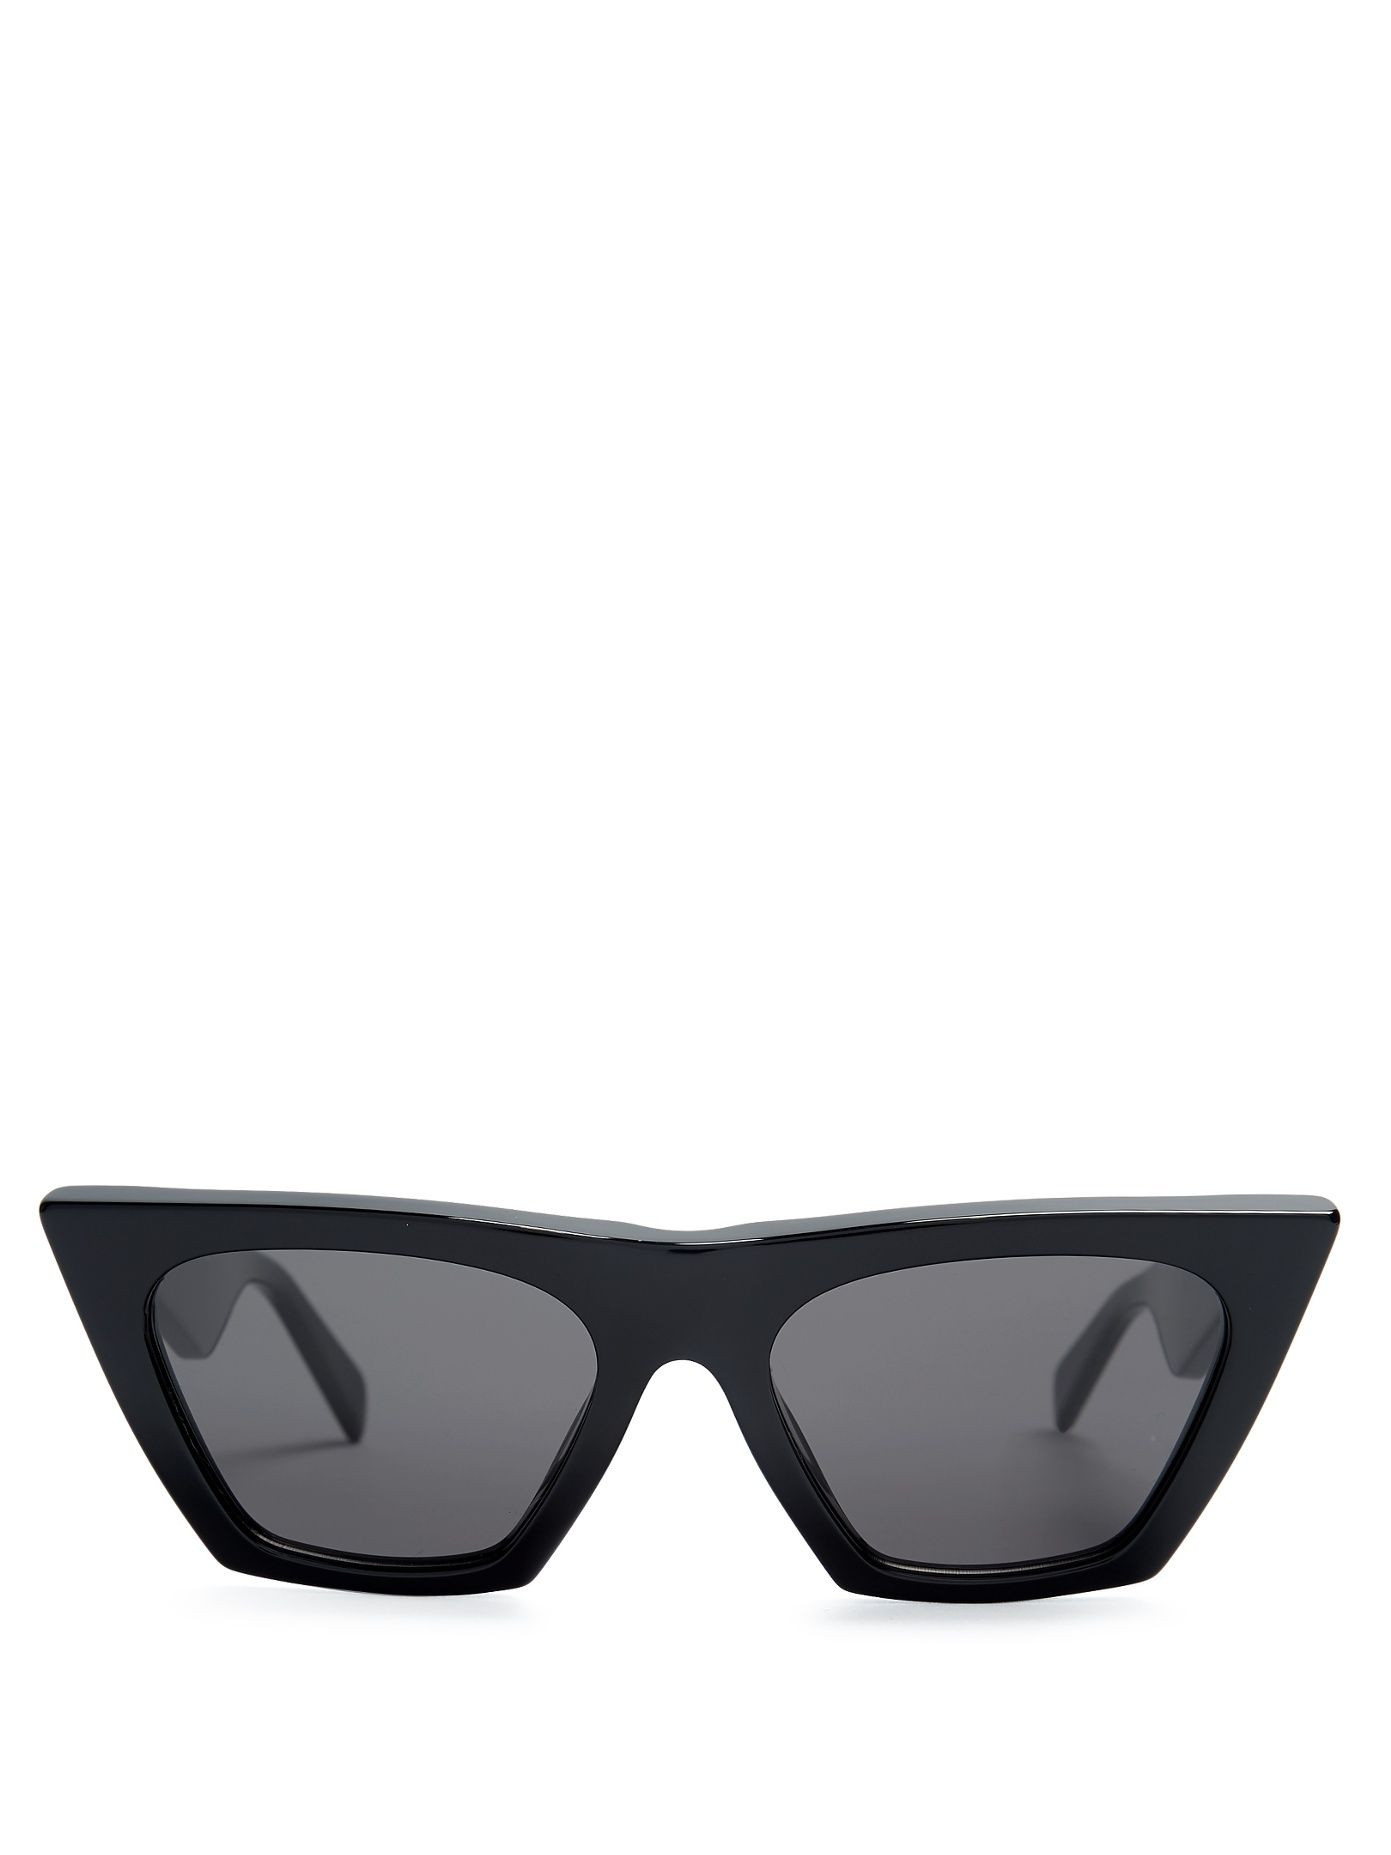 6636492a538 Pin by SmartBuyGlasses